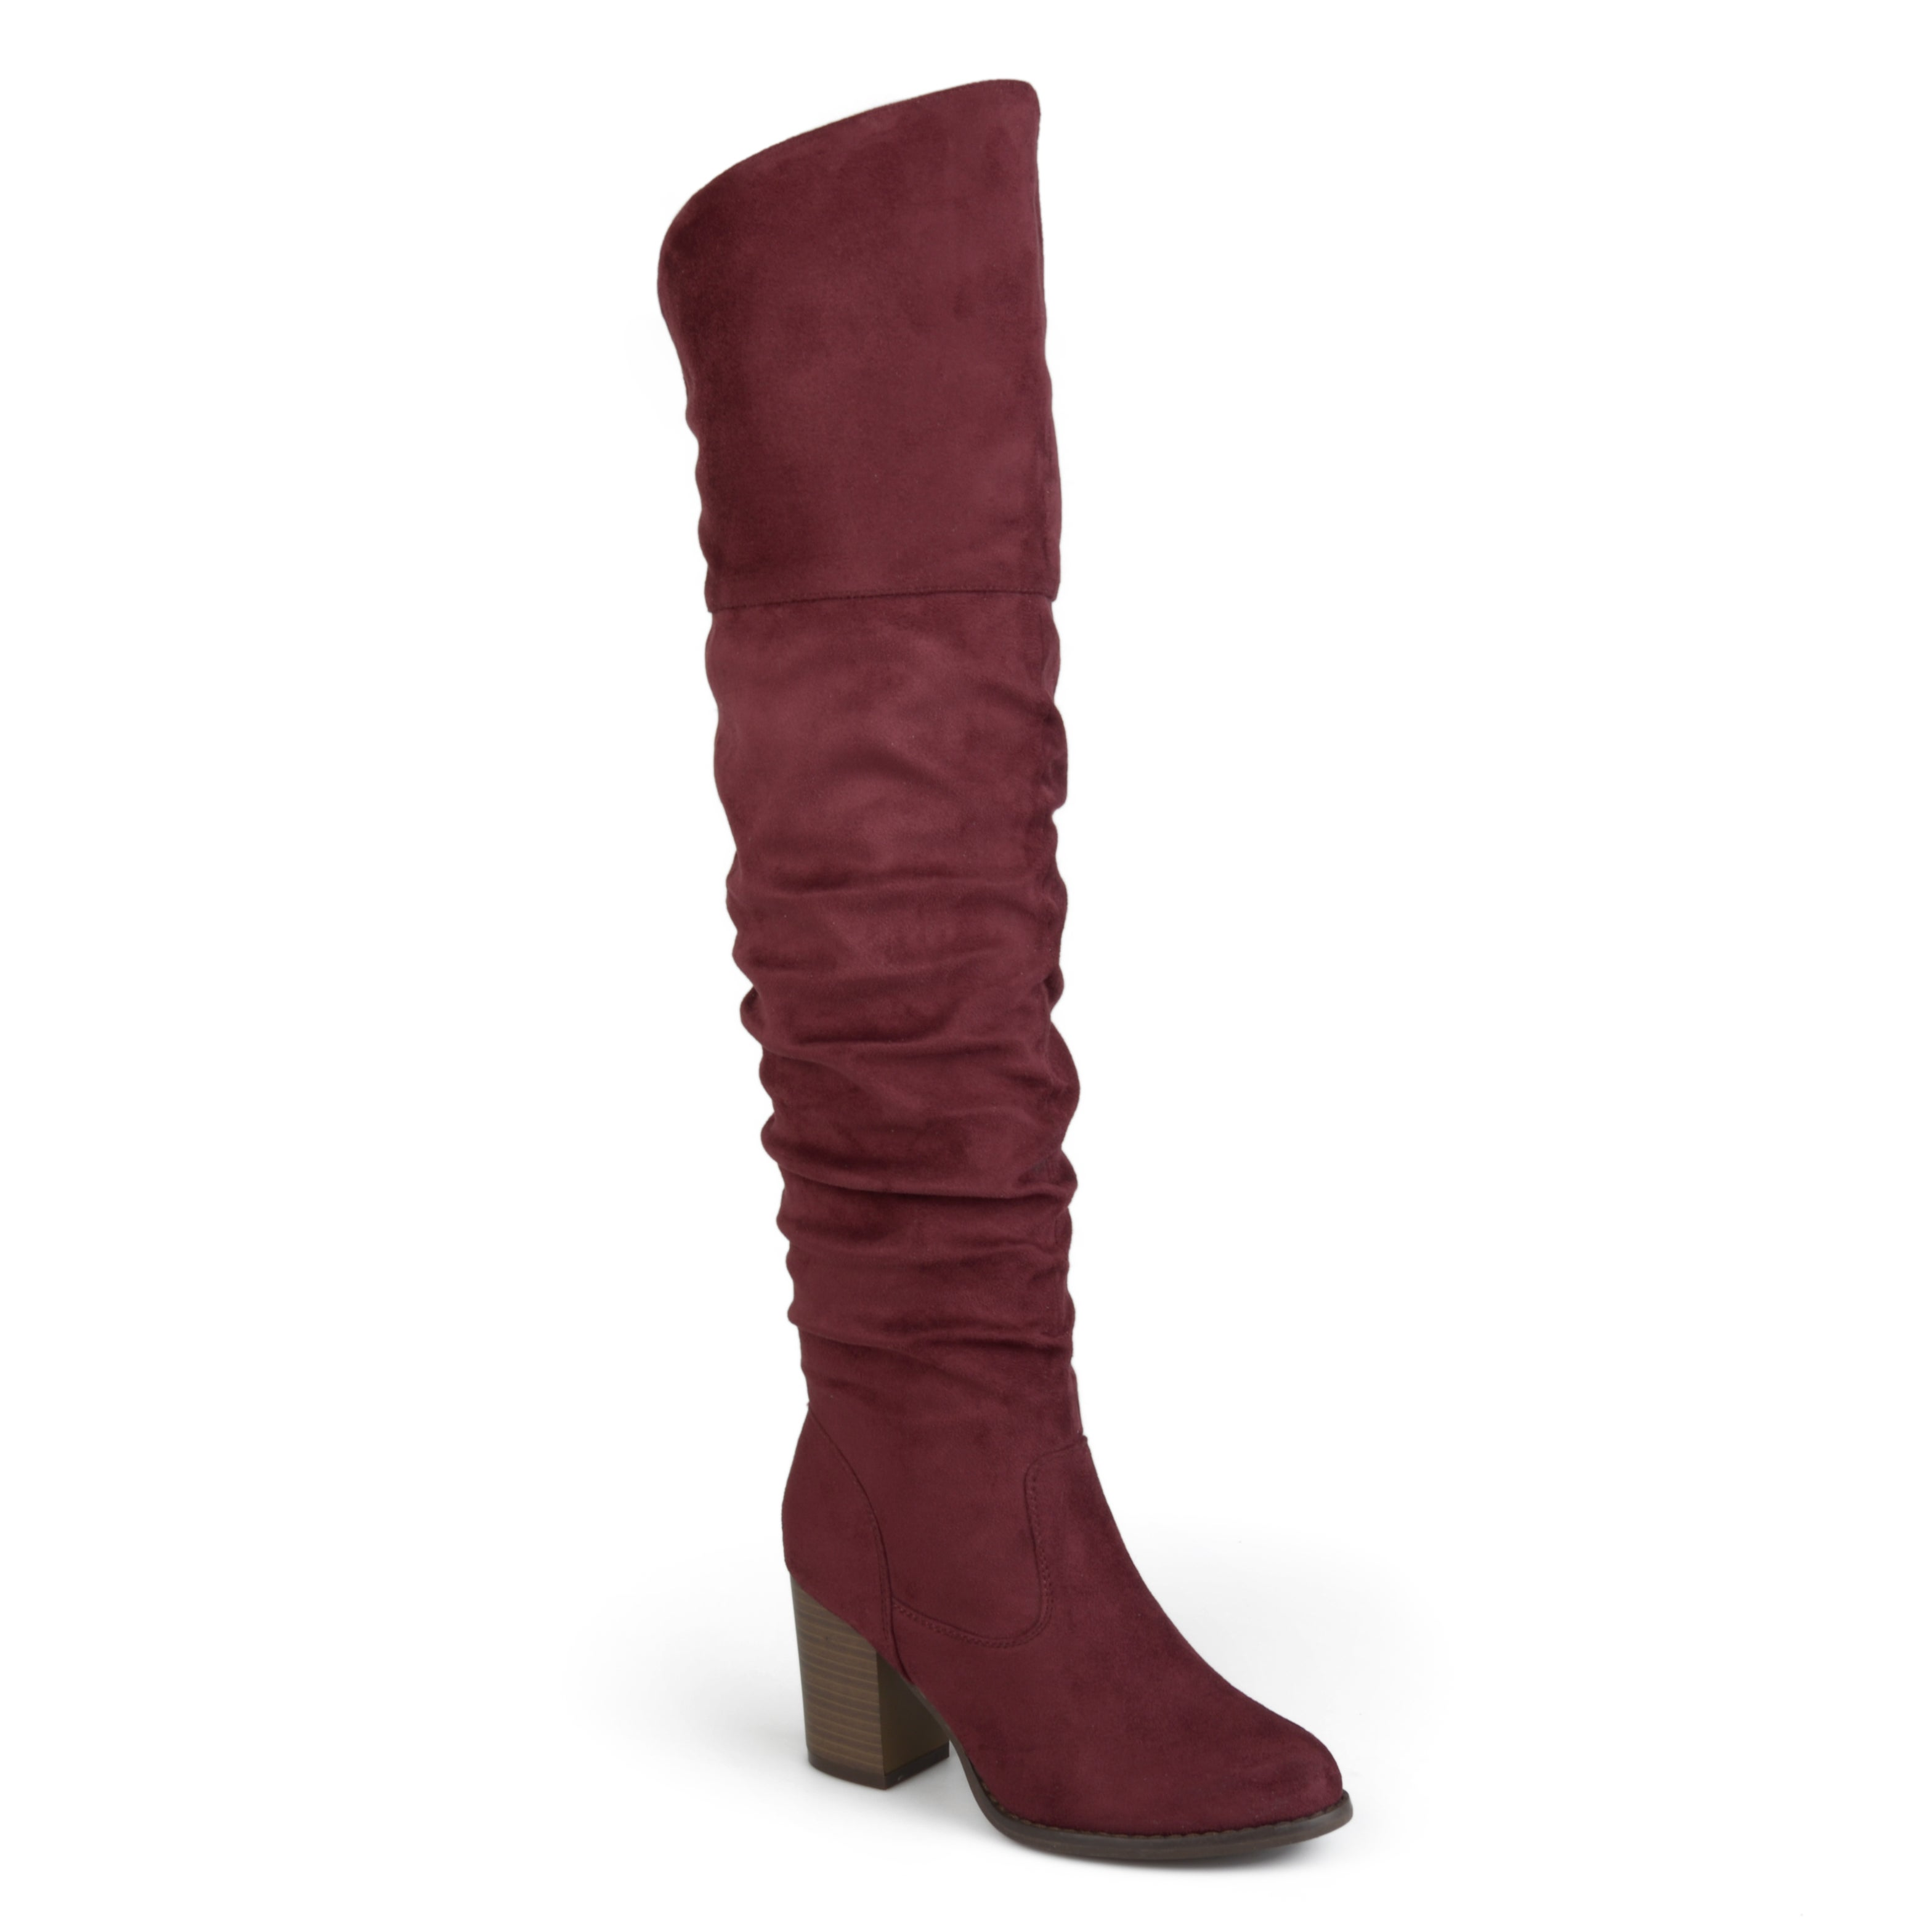 47e1fbac94d Buy Over-the-Knee Boots Women s Boots Online at Overstock